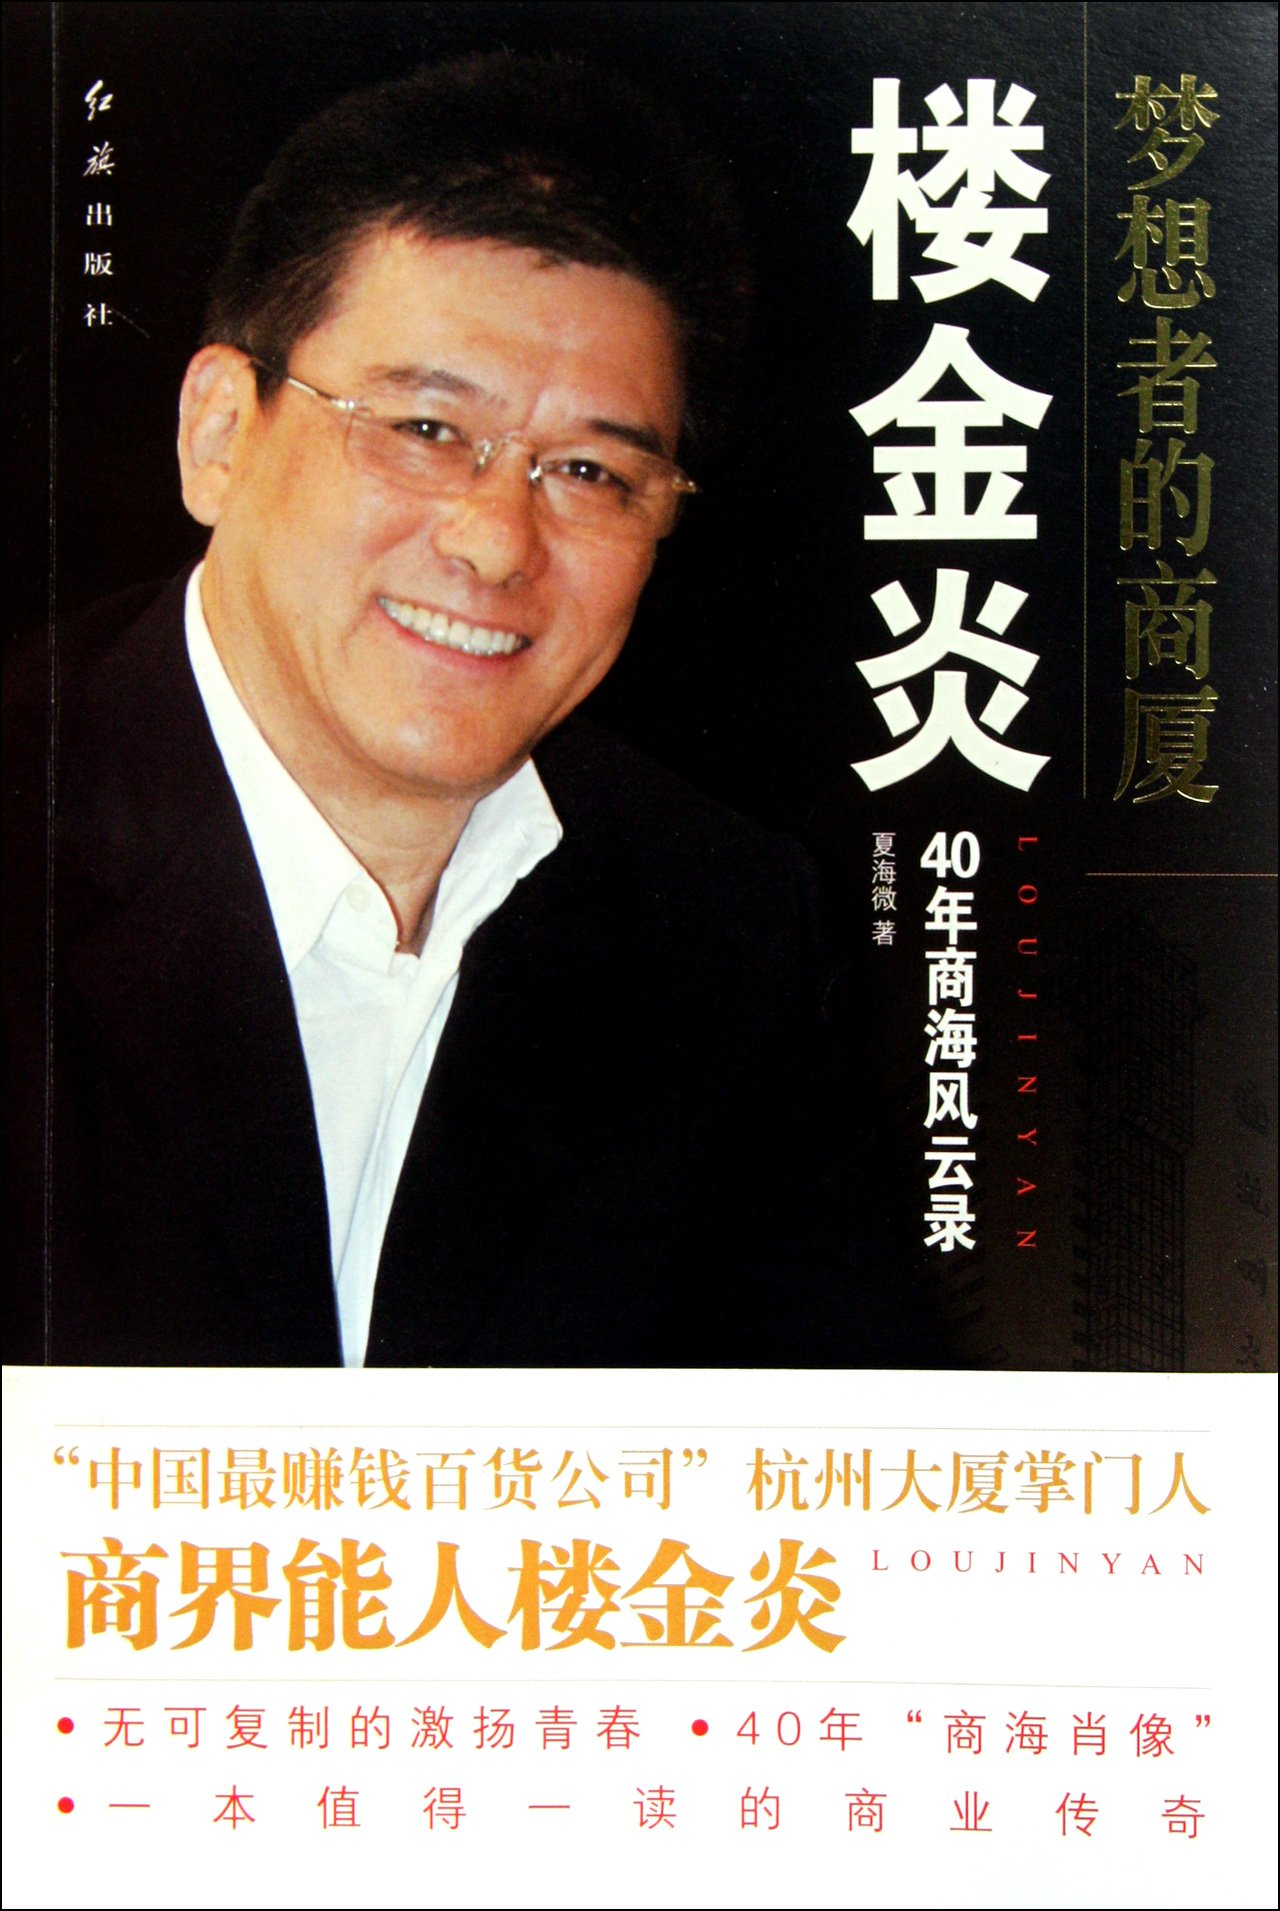 Download The Mansion of Dreamer-40 Year Record of Lou Jinyan in Business World (Chinese Edition) pdf